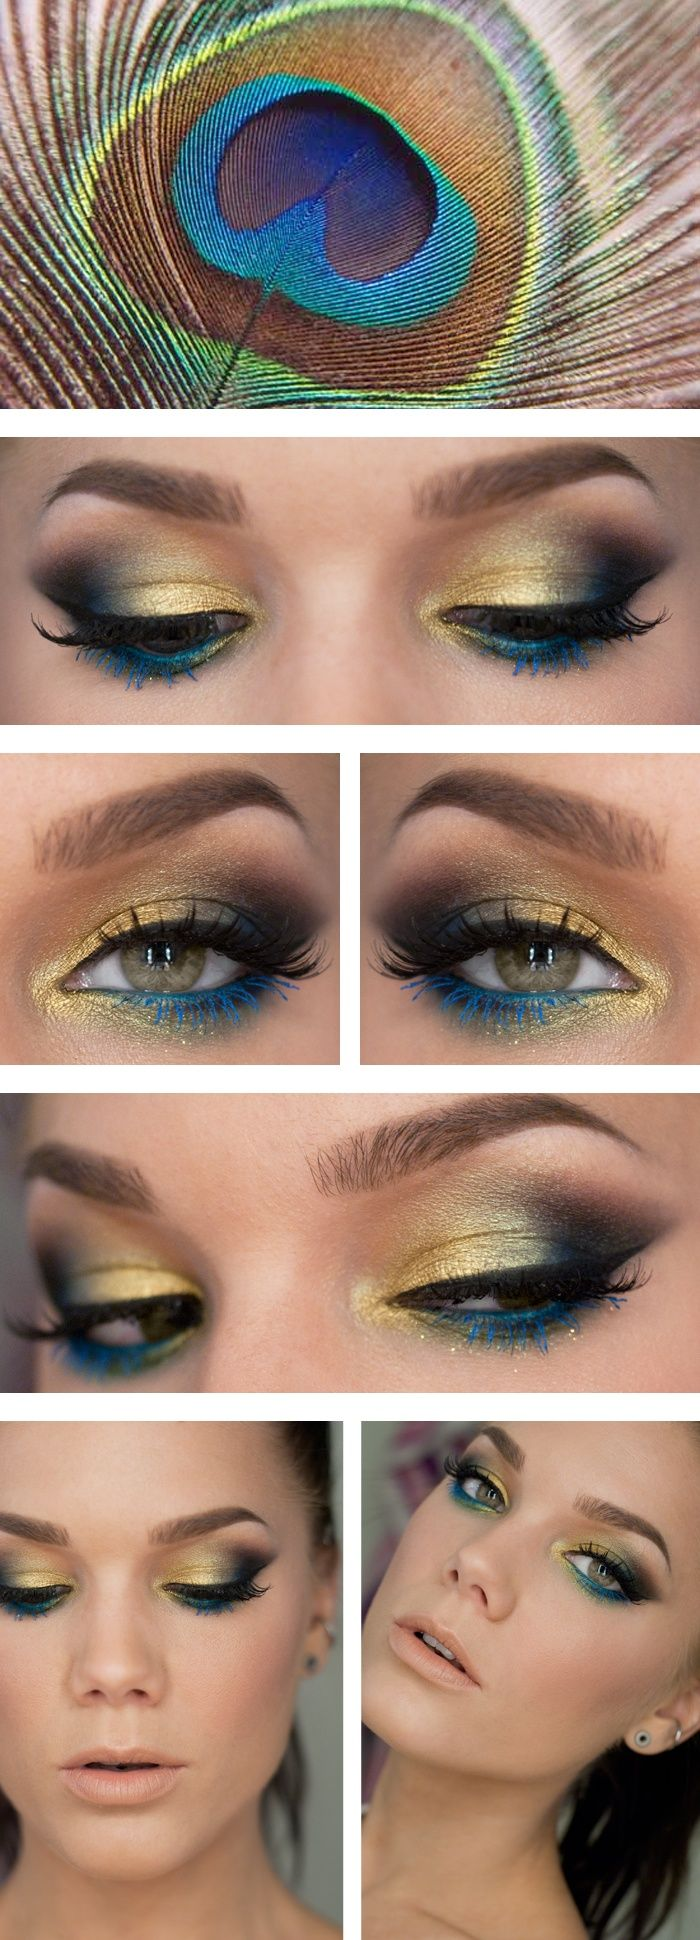 best images about makeup on pinterest smoky eye pretty eyes